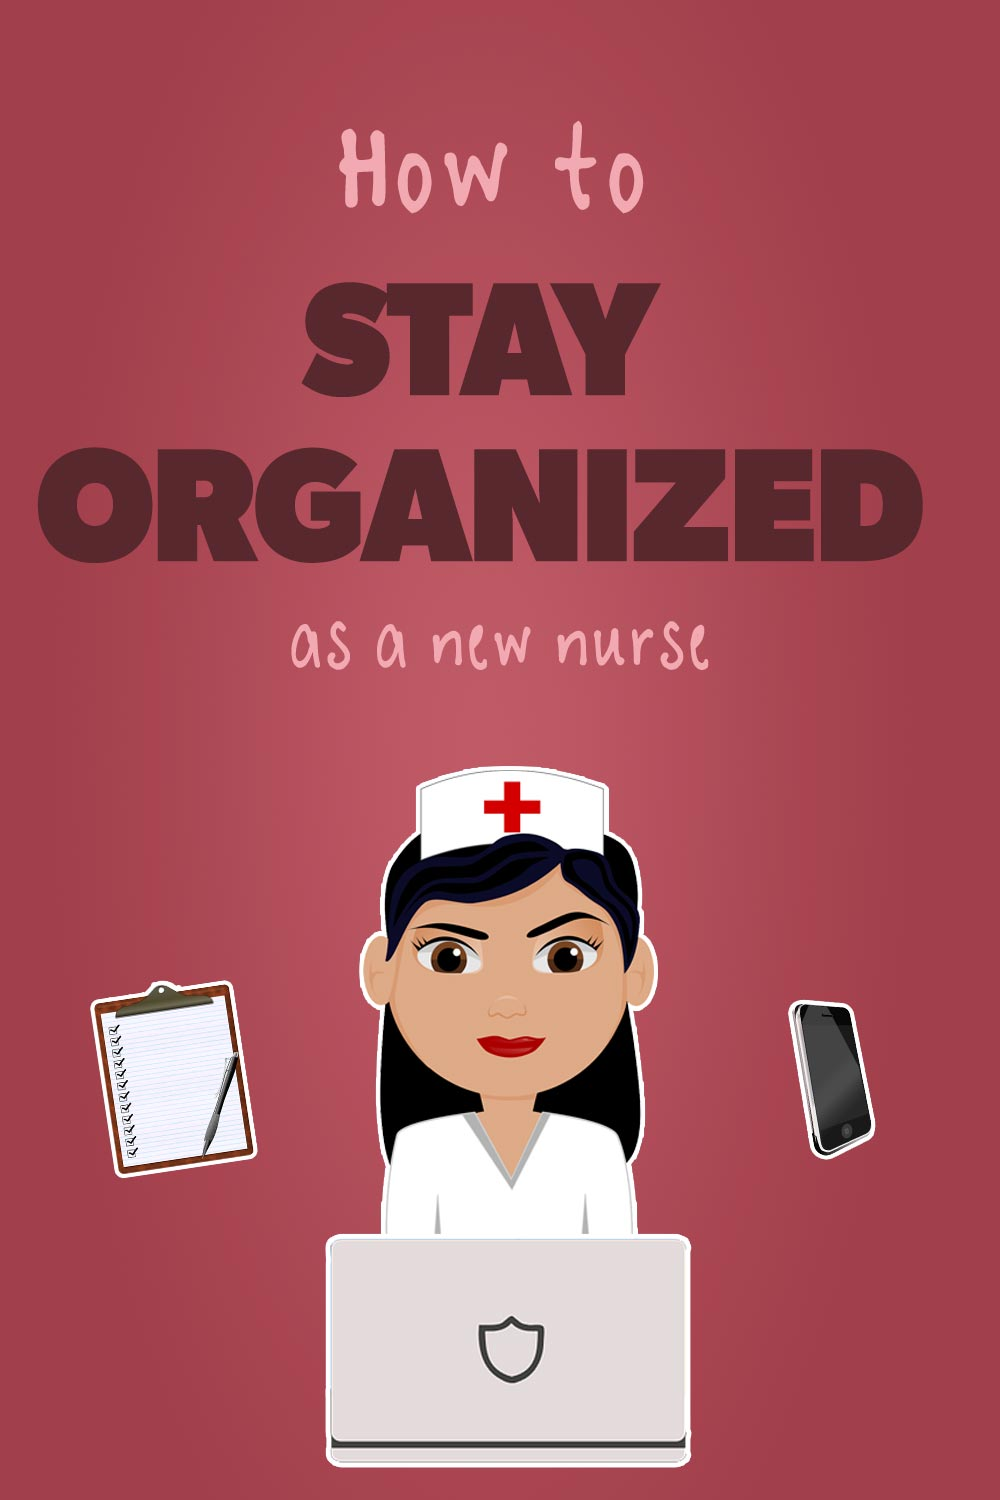 How to stay organized as a nurse pin